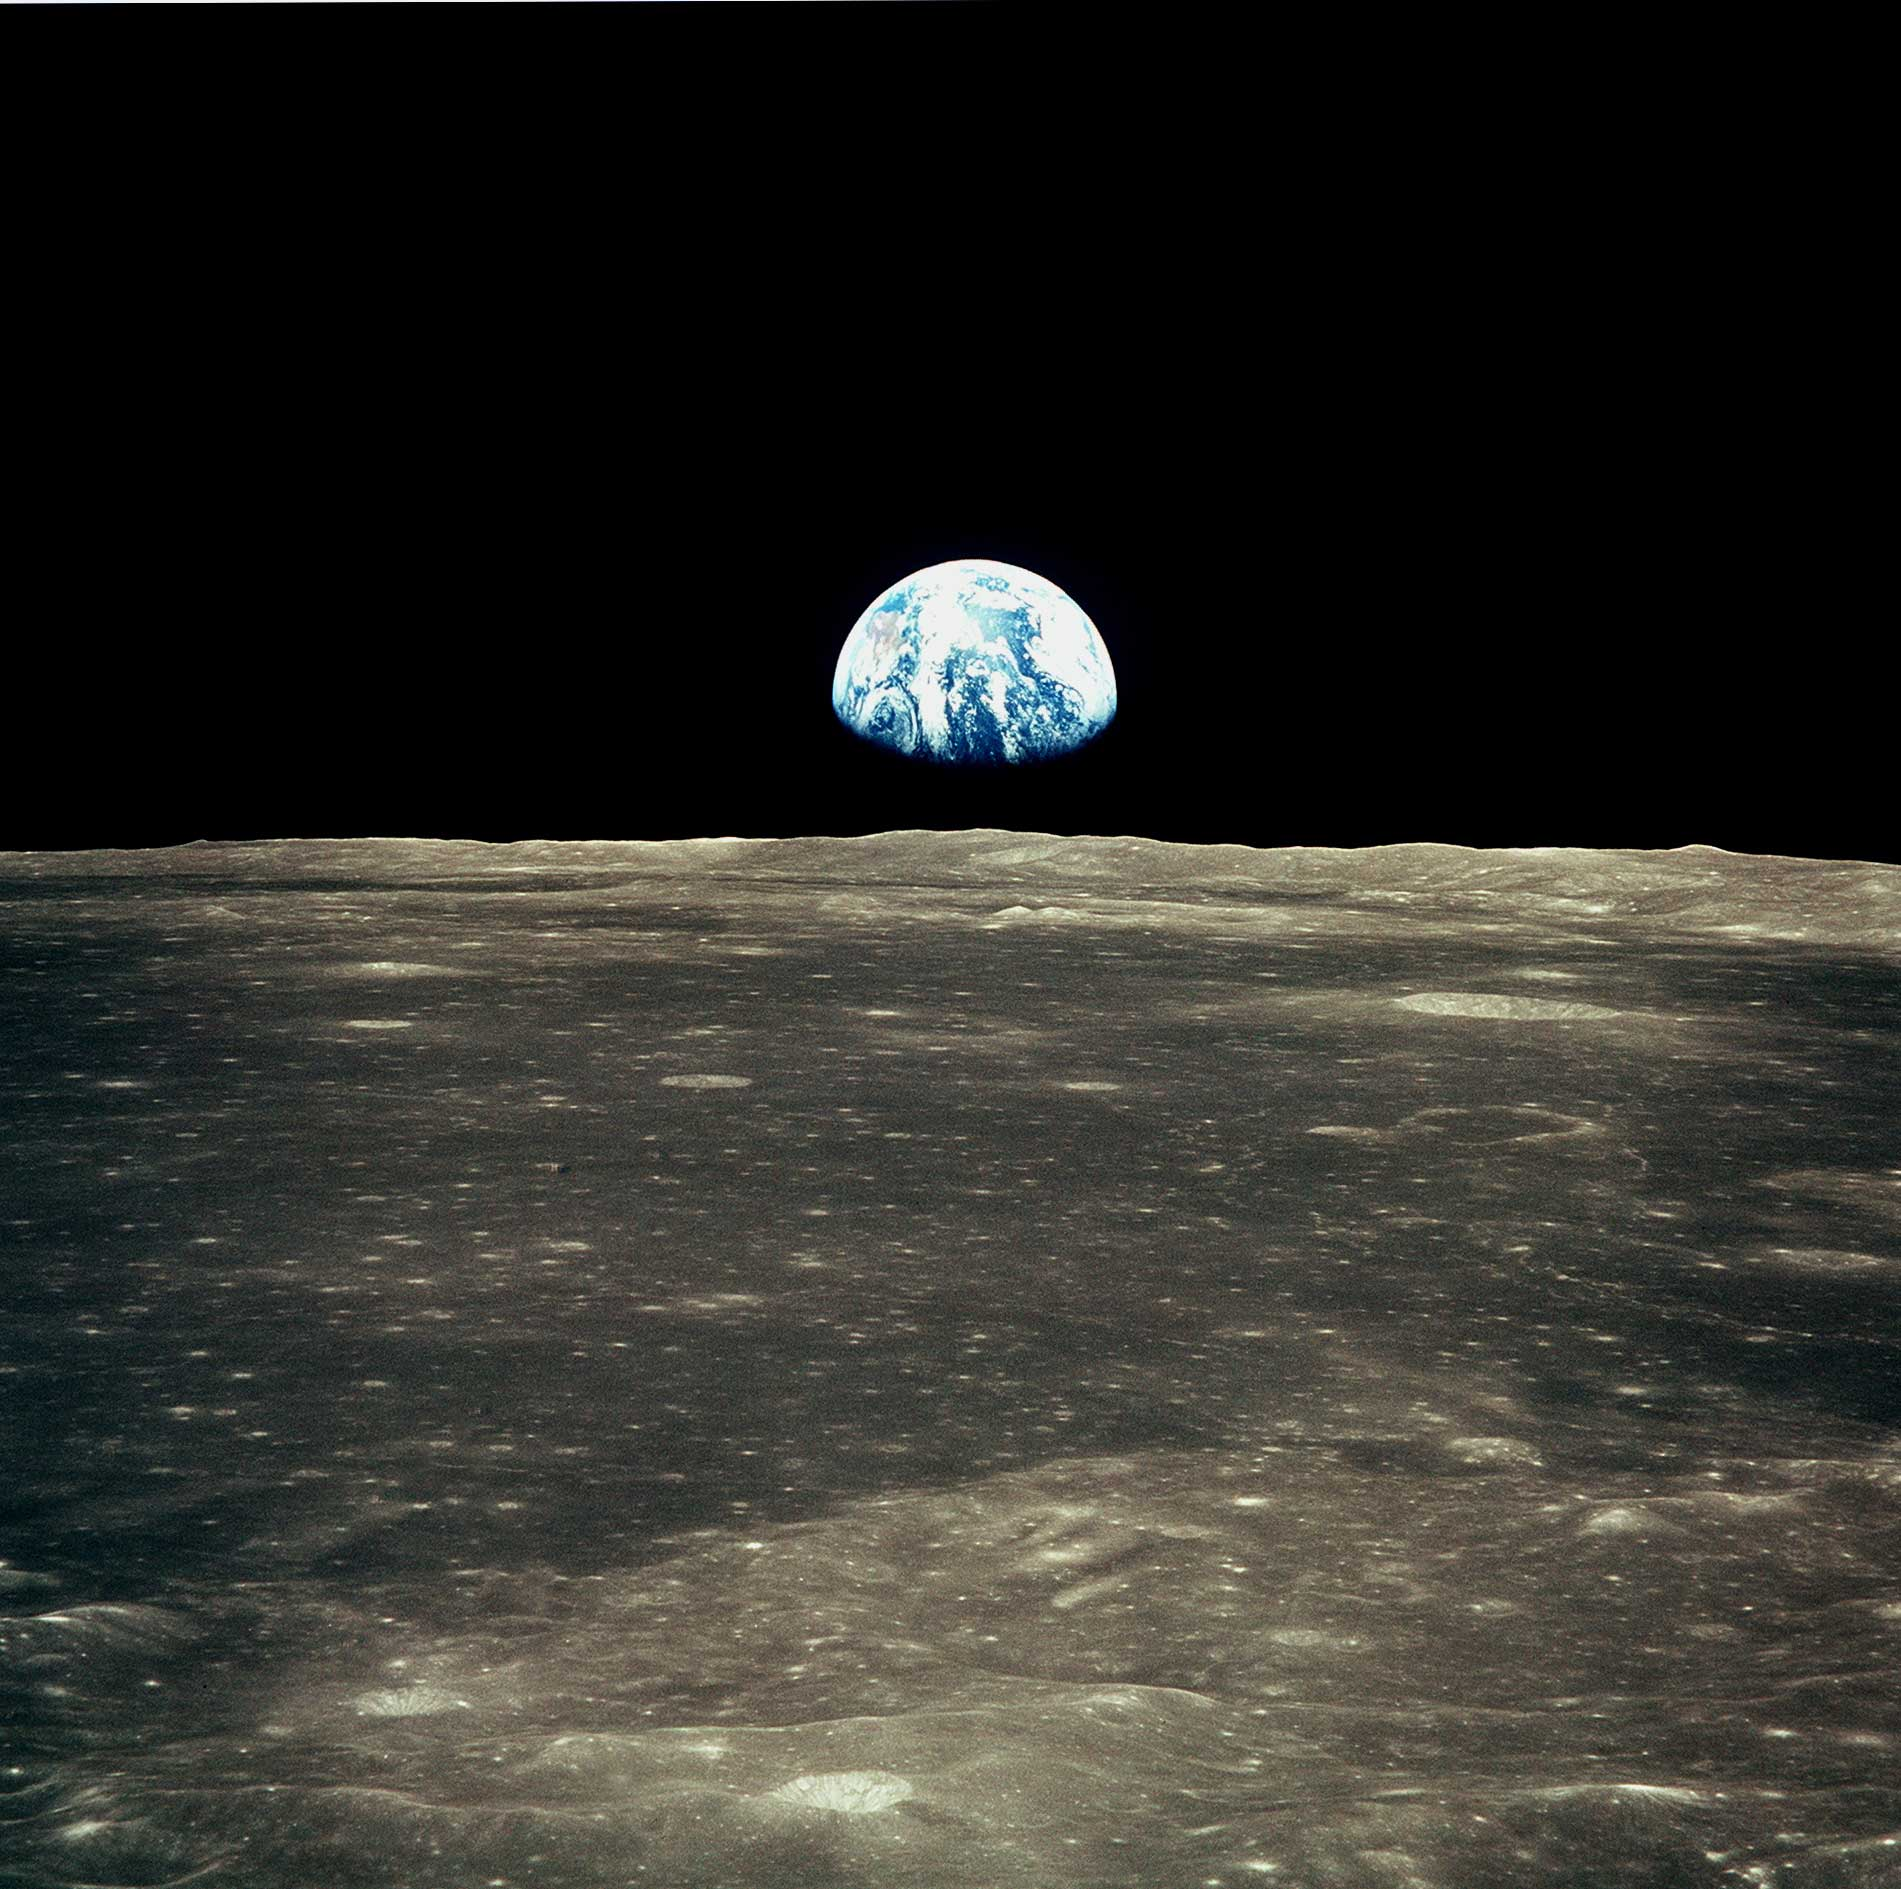 earth from the moon nasa - photo #32